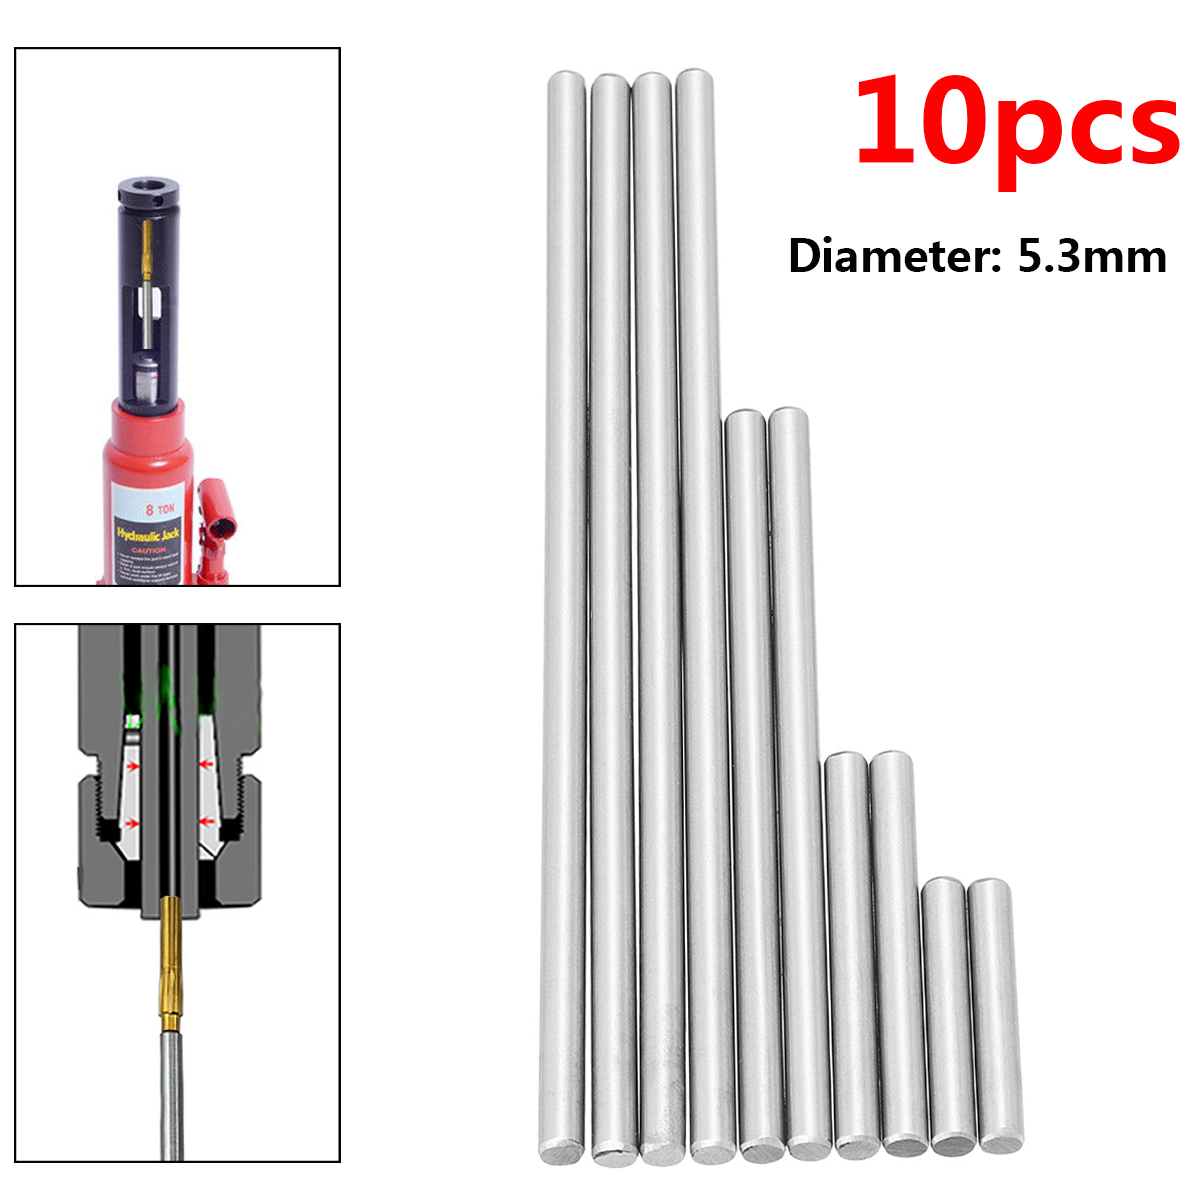 New 10pcs Ejector Pins Set For Pushing Rifling Buttons High Hardness Full Specifications Steel Reamer Machine Tools Accessories